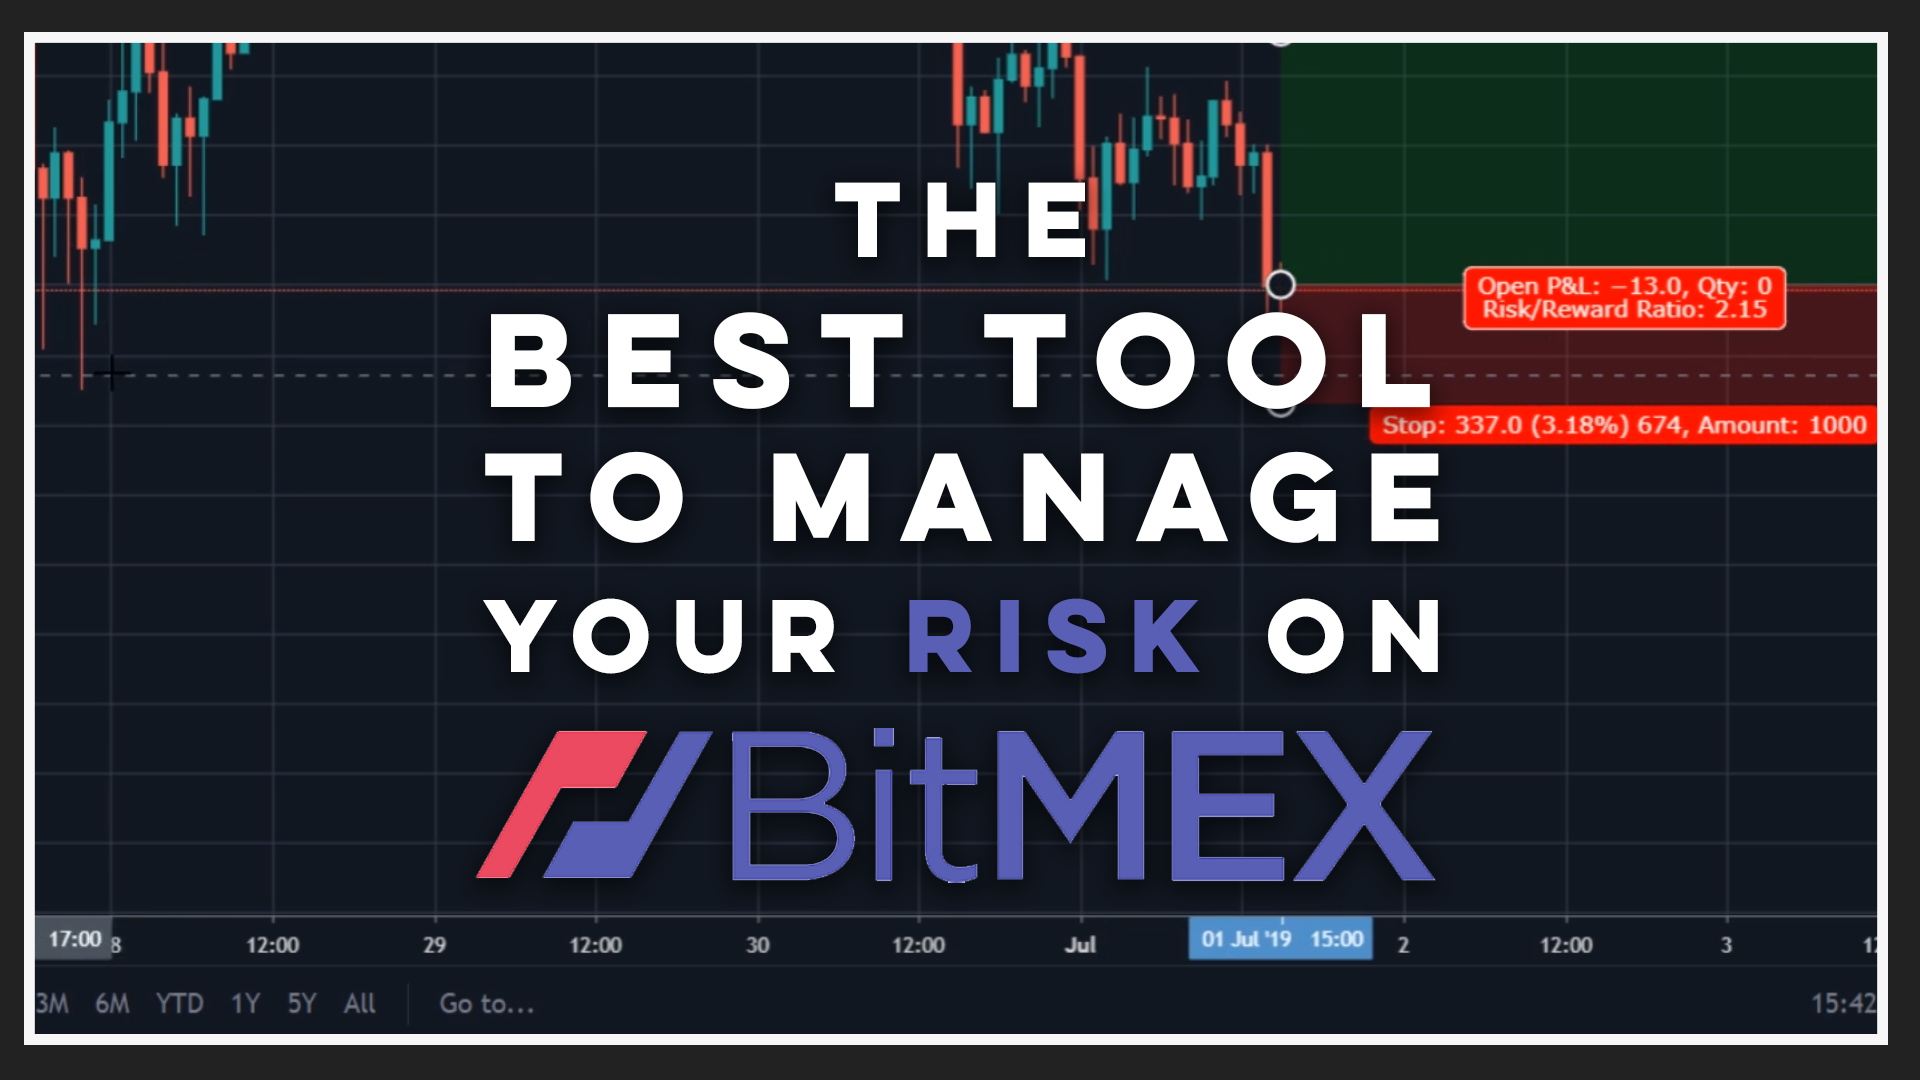 The Best Tool to manage your Risk on BitMEX (Video) | 4C Trading